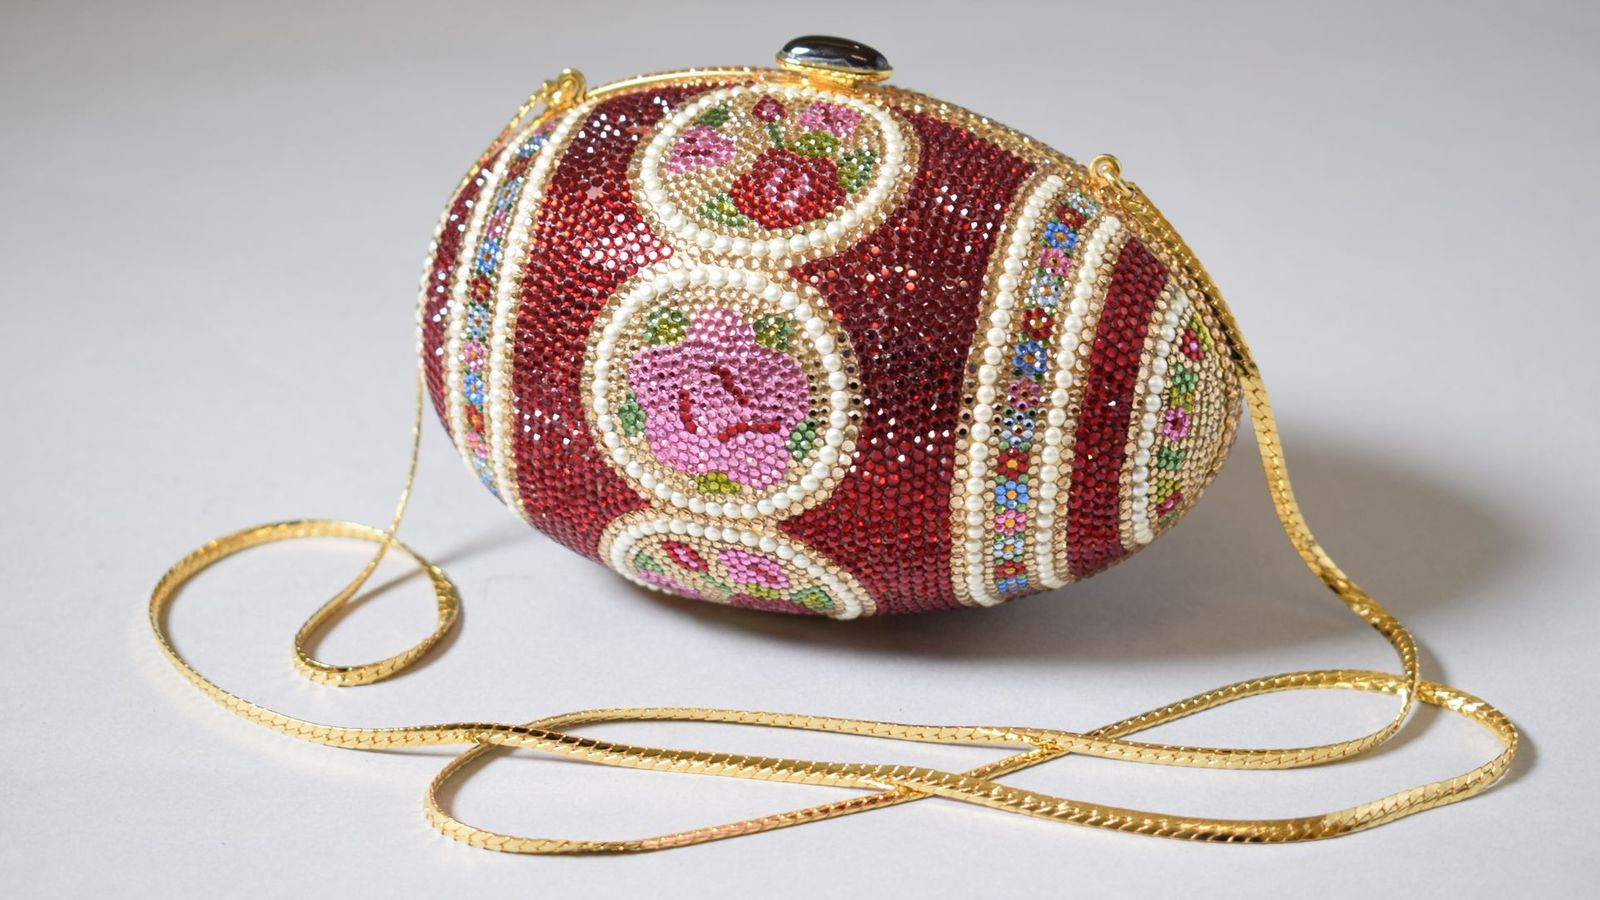 Art meets fashion in the intricate, rhinestone-encrusted Faberge Egg evening bag by Judith Leiber (Credit: Victoria and Albert